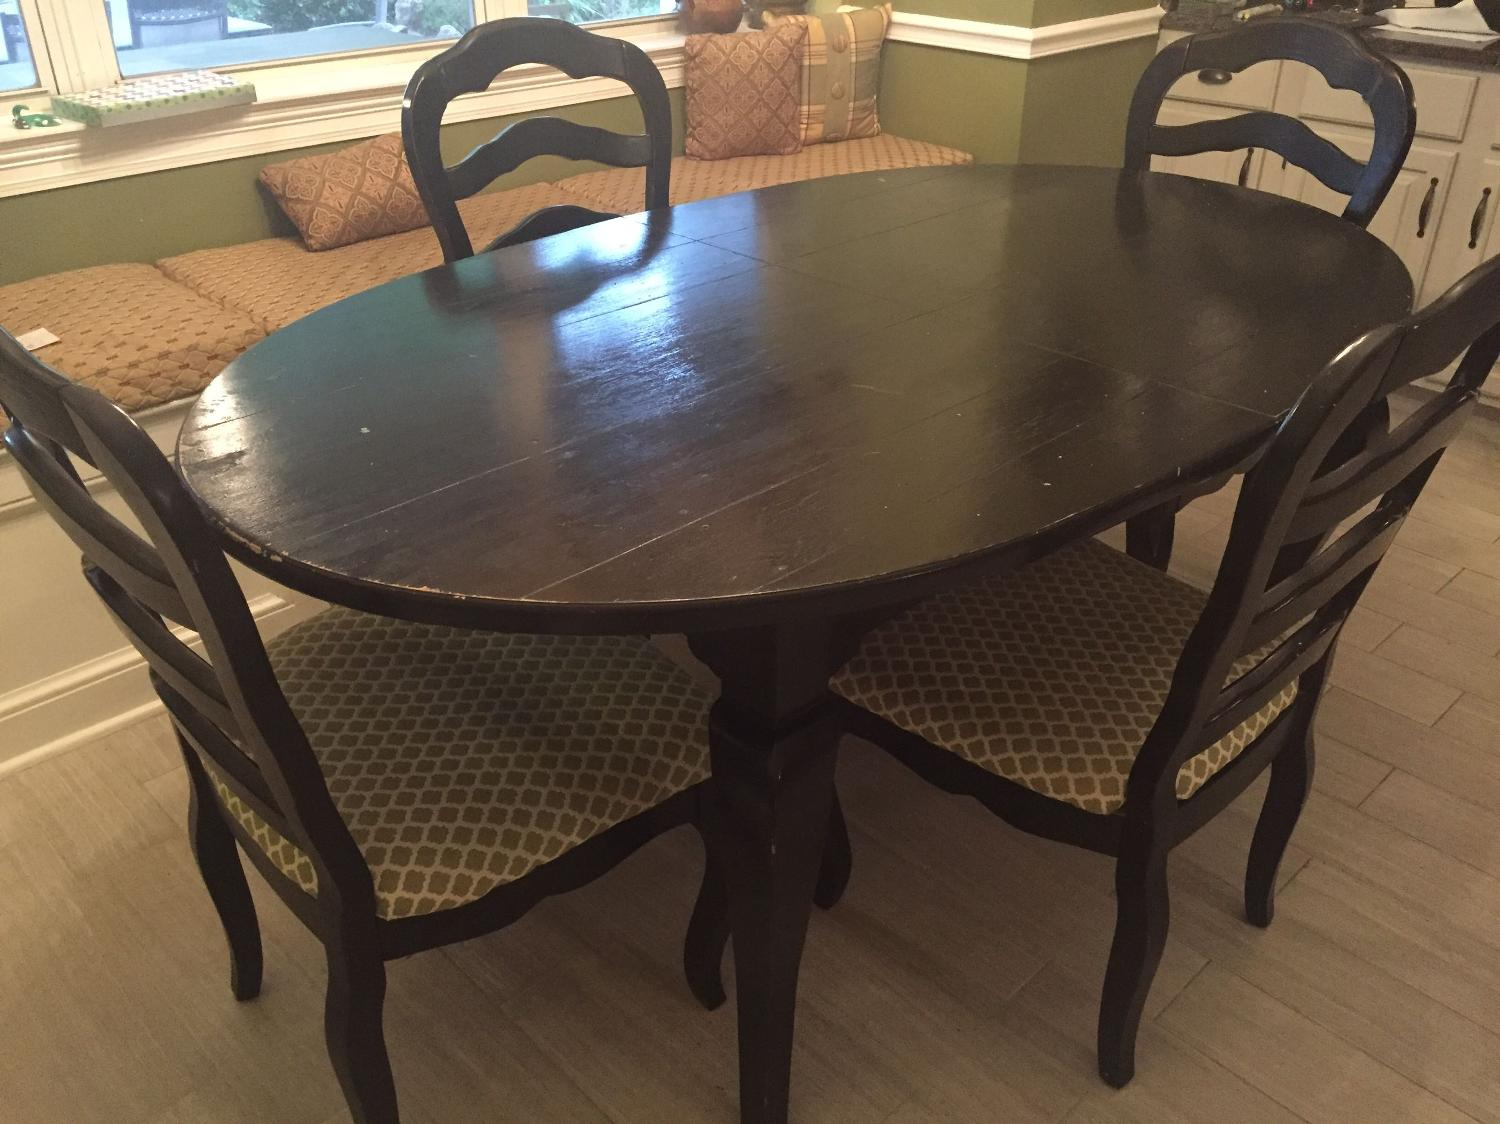 Find More Pottery Barn Dining Table With 4 Chairs- Must Go